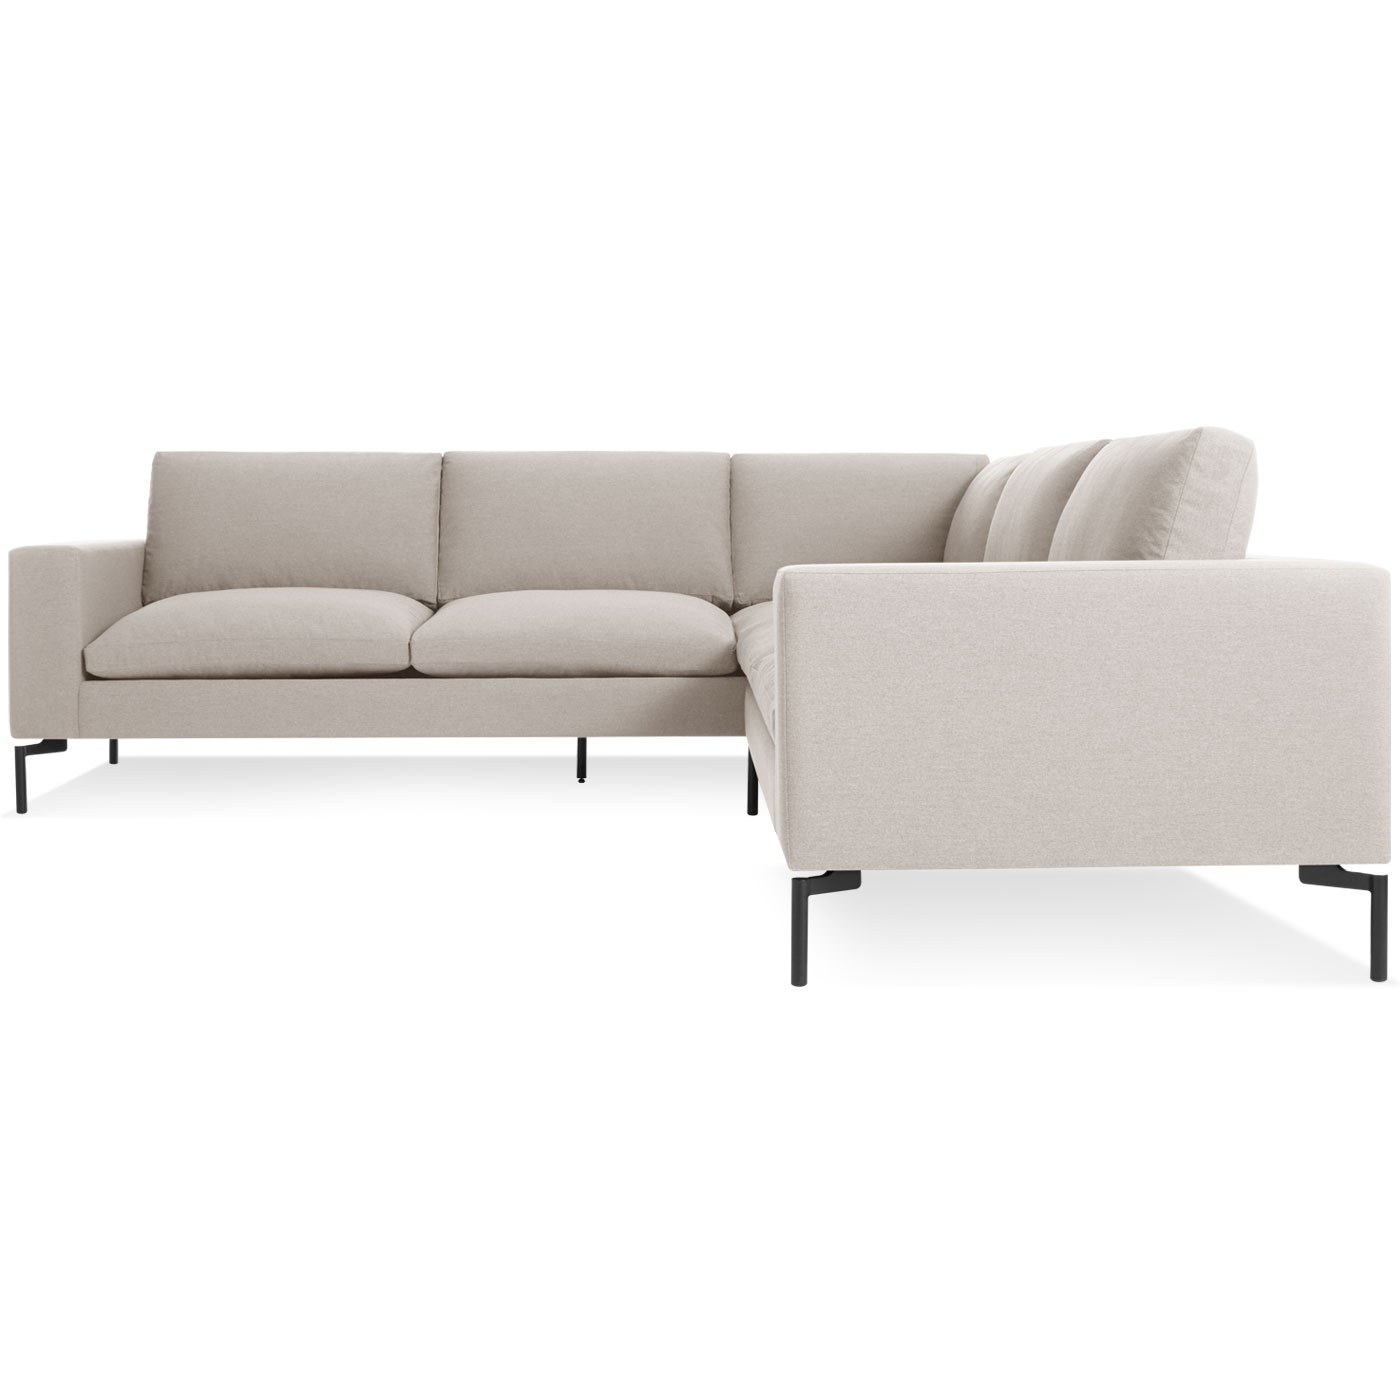 New Standard Small Sectional Sofa - Modern Sofas And Sectionals pertaining to Sydney Sectional Sofas (Image 2 of 10)